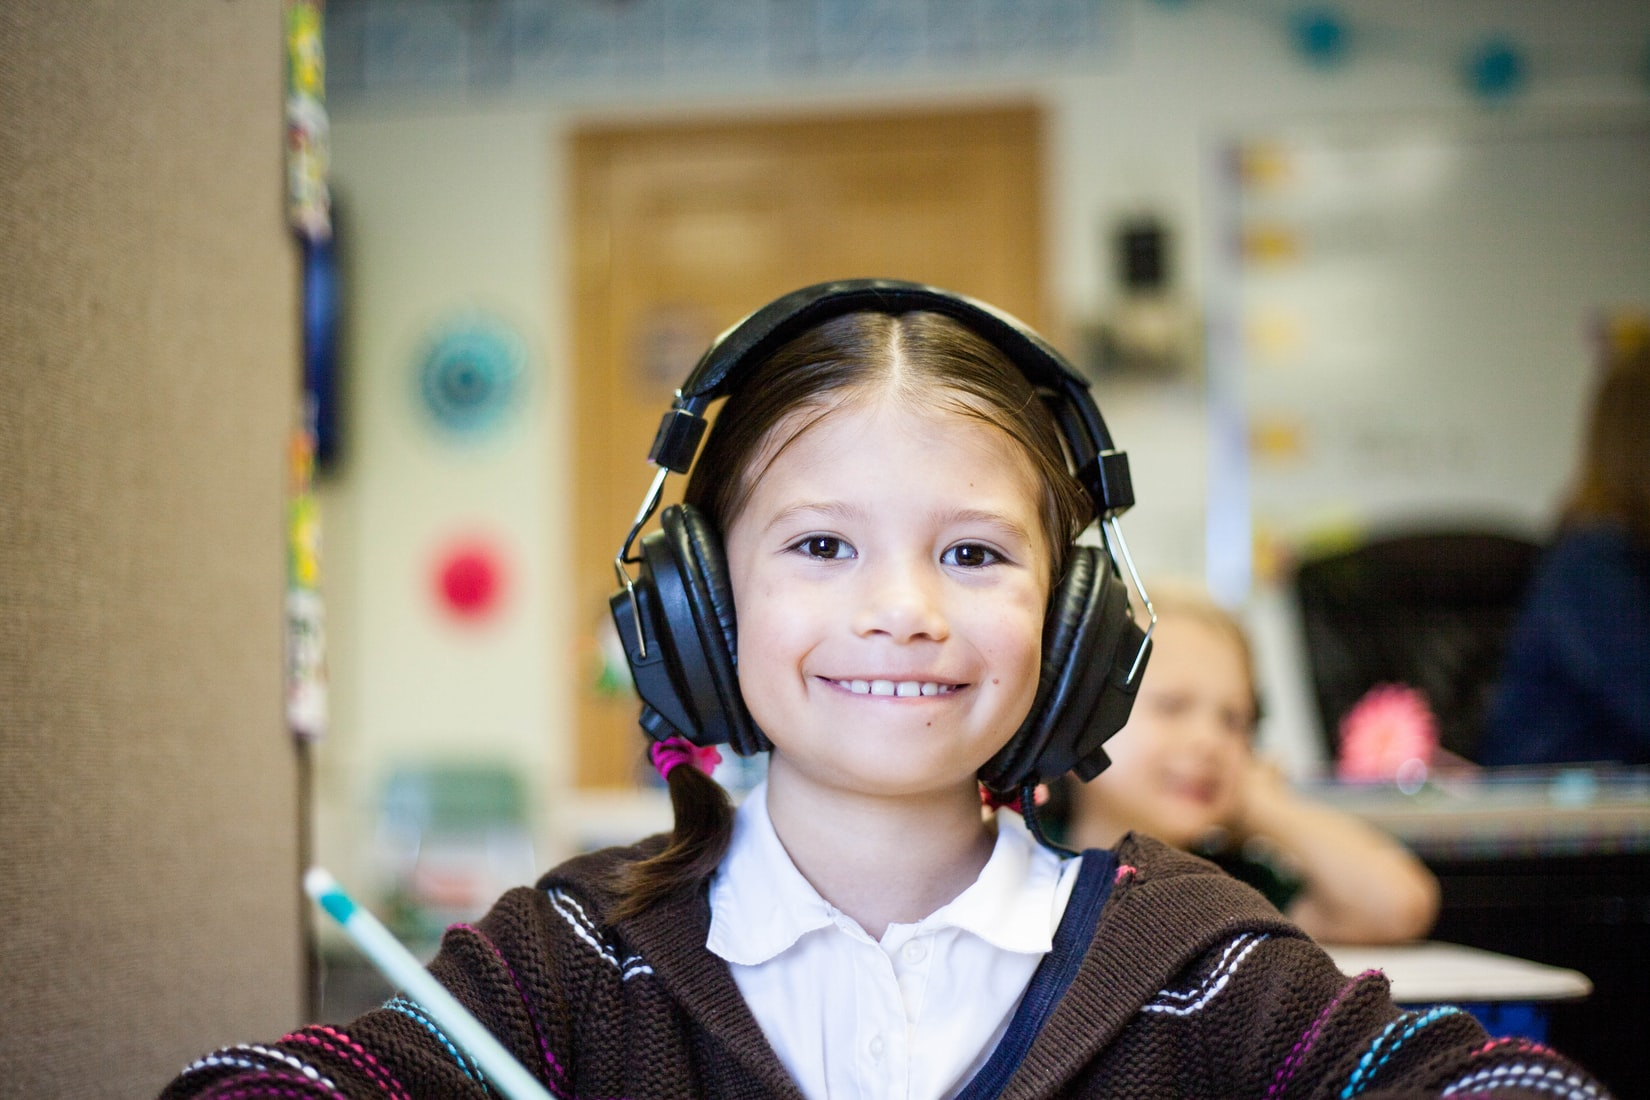 4 Current Affairs Podcasts for Curious Children